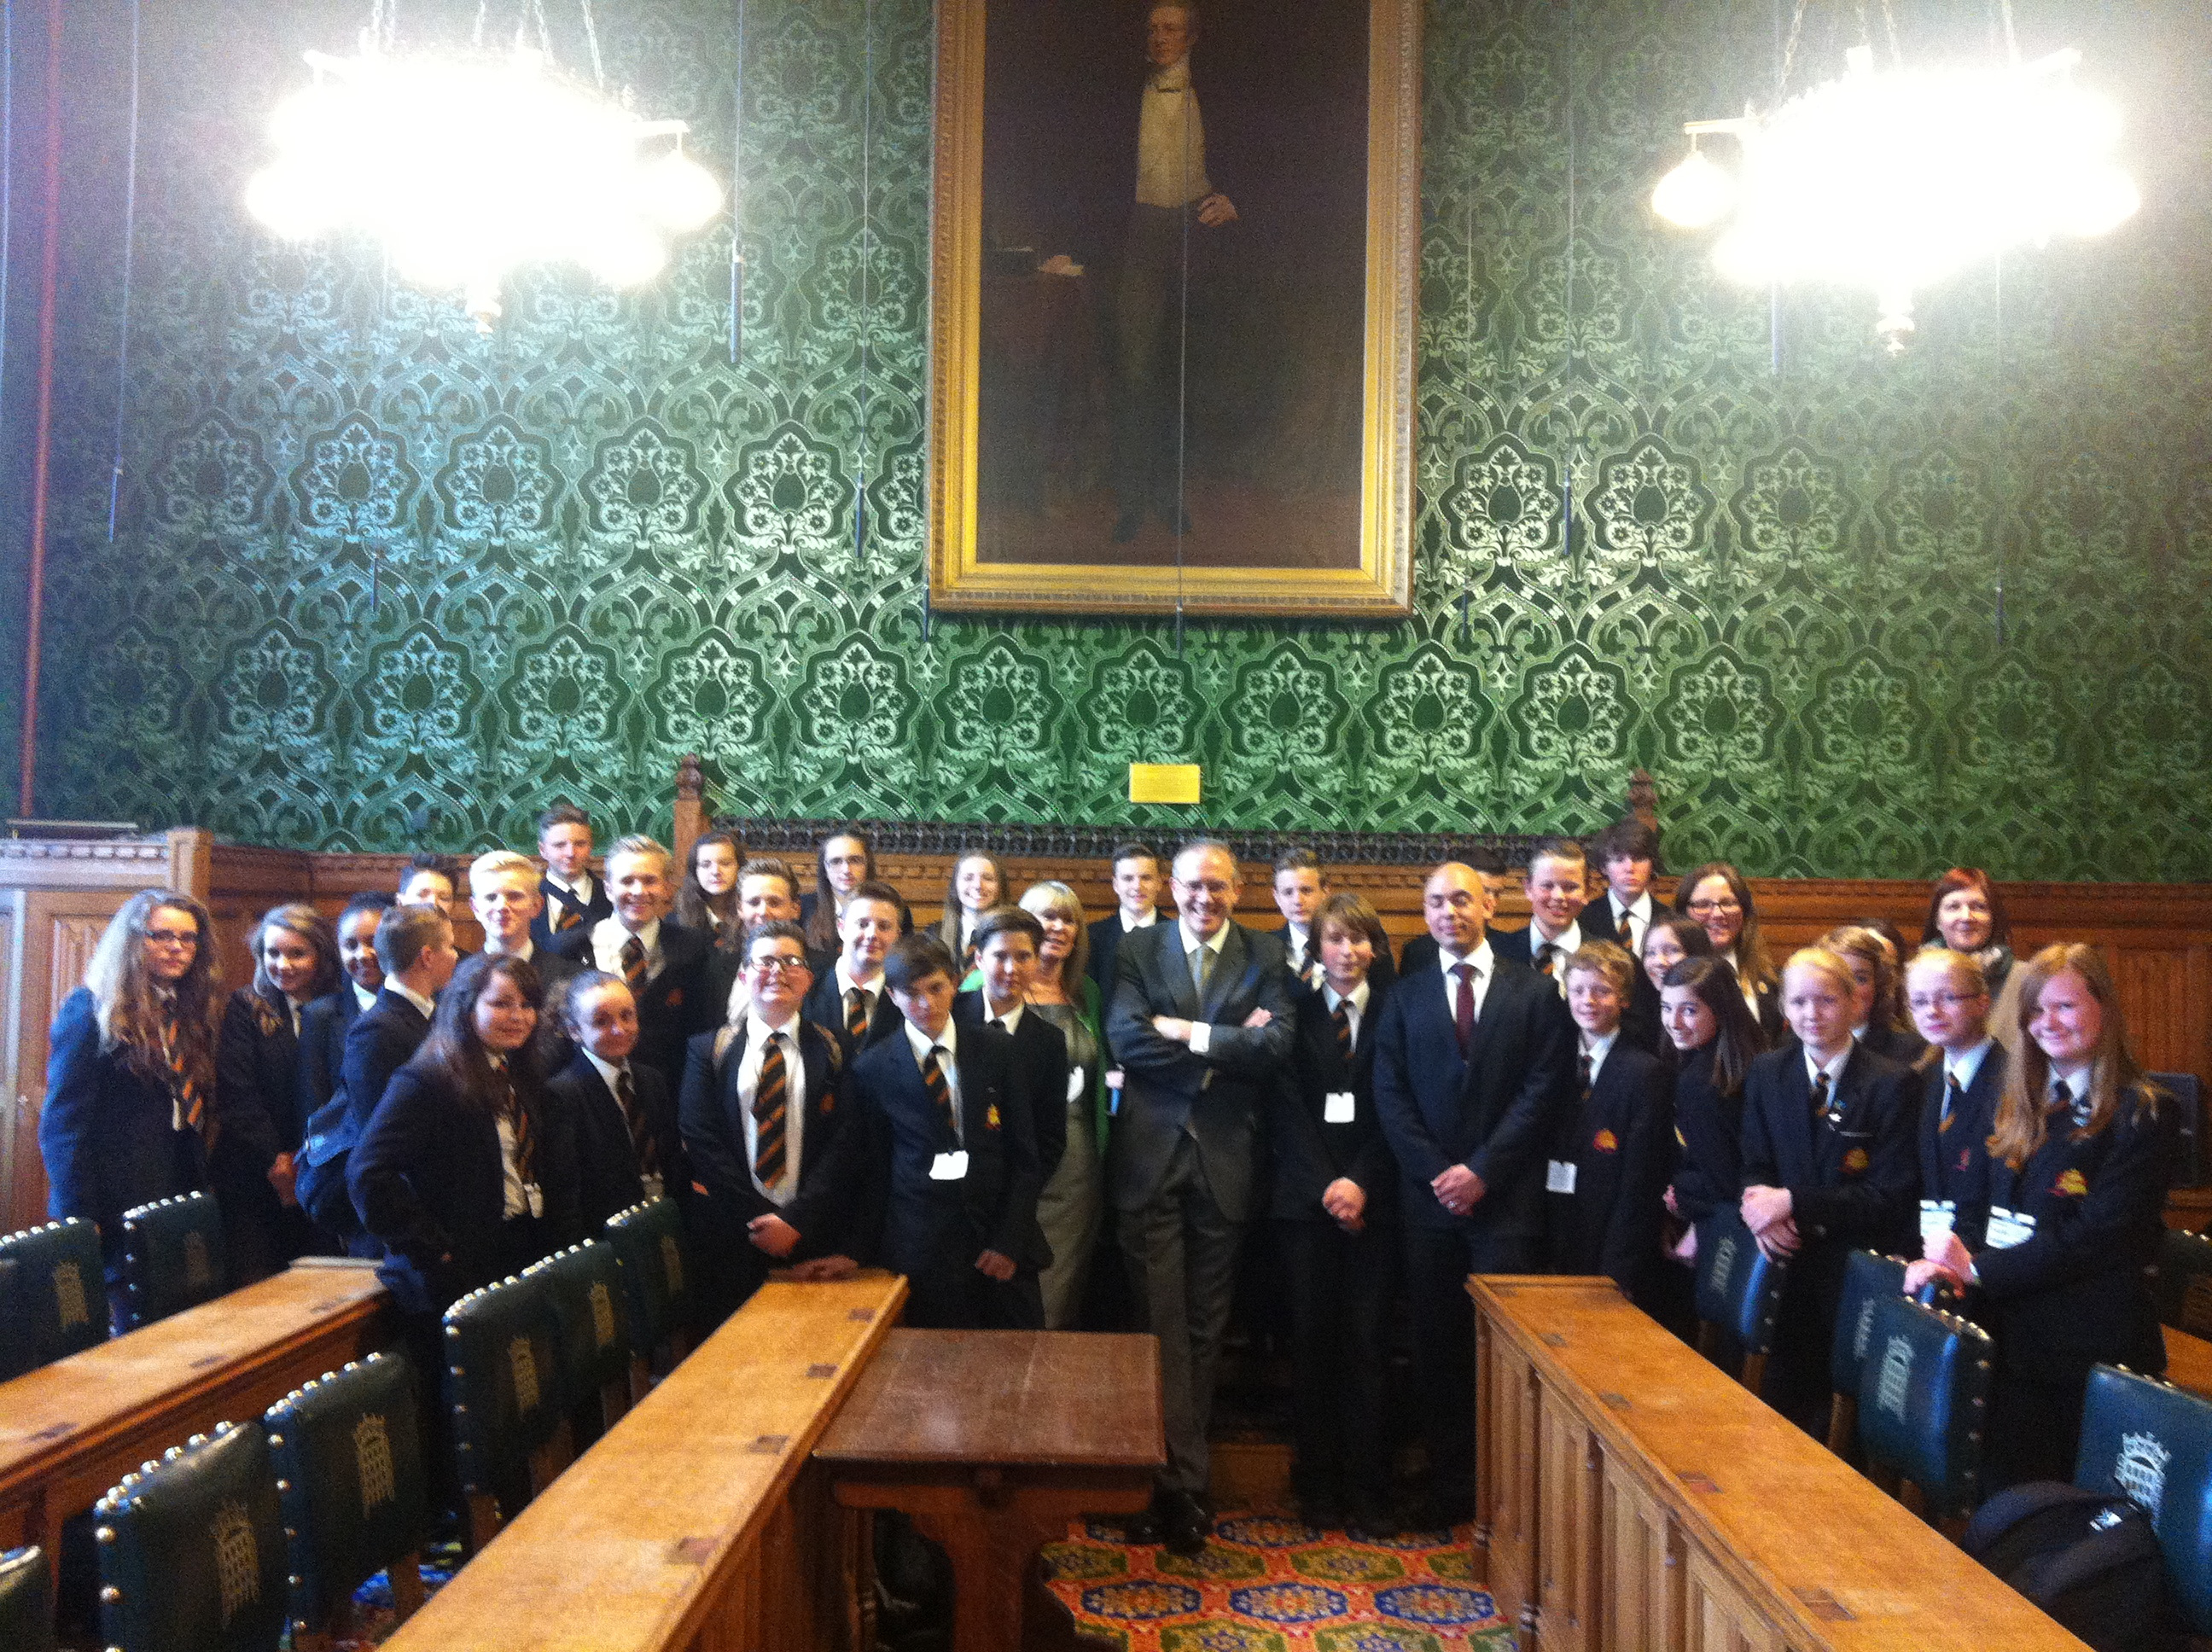 John Baron Mp Welcomes Mayflower High School To The Houses